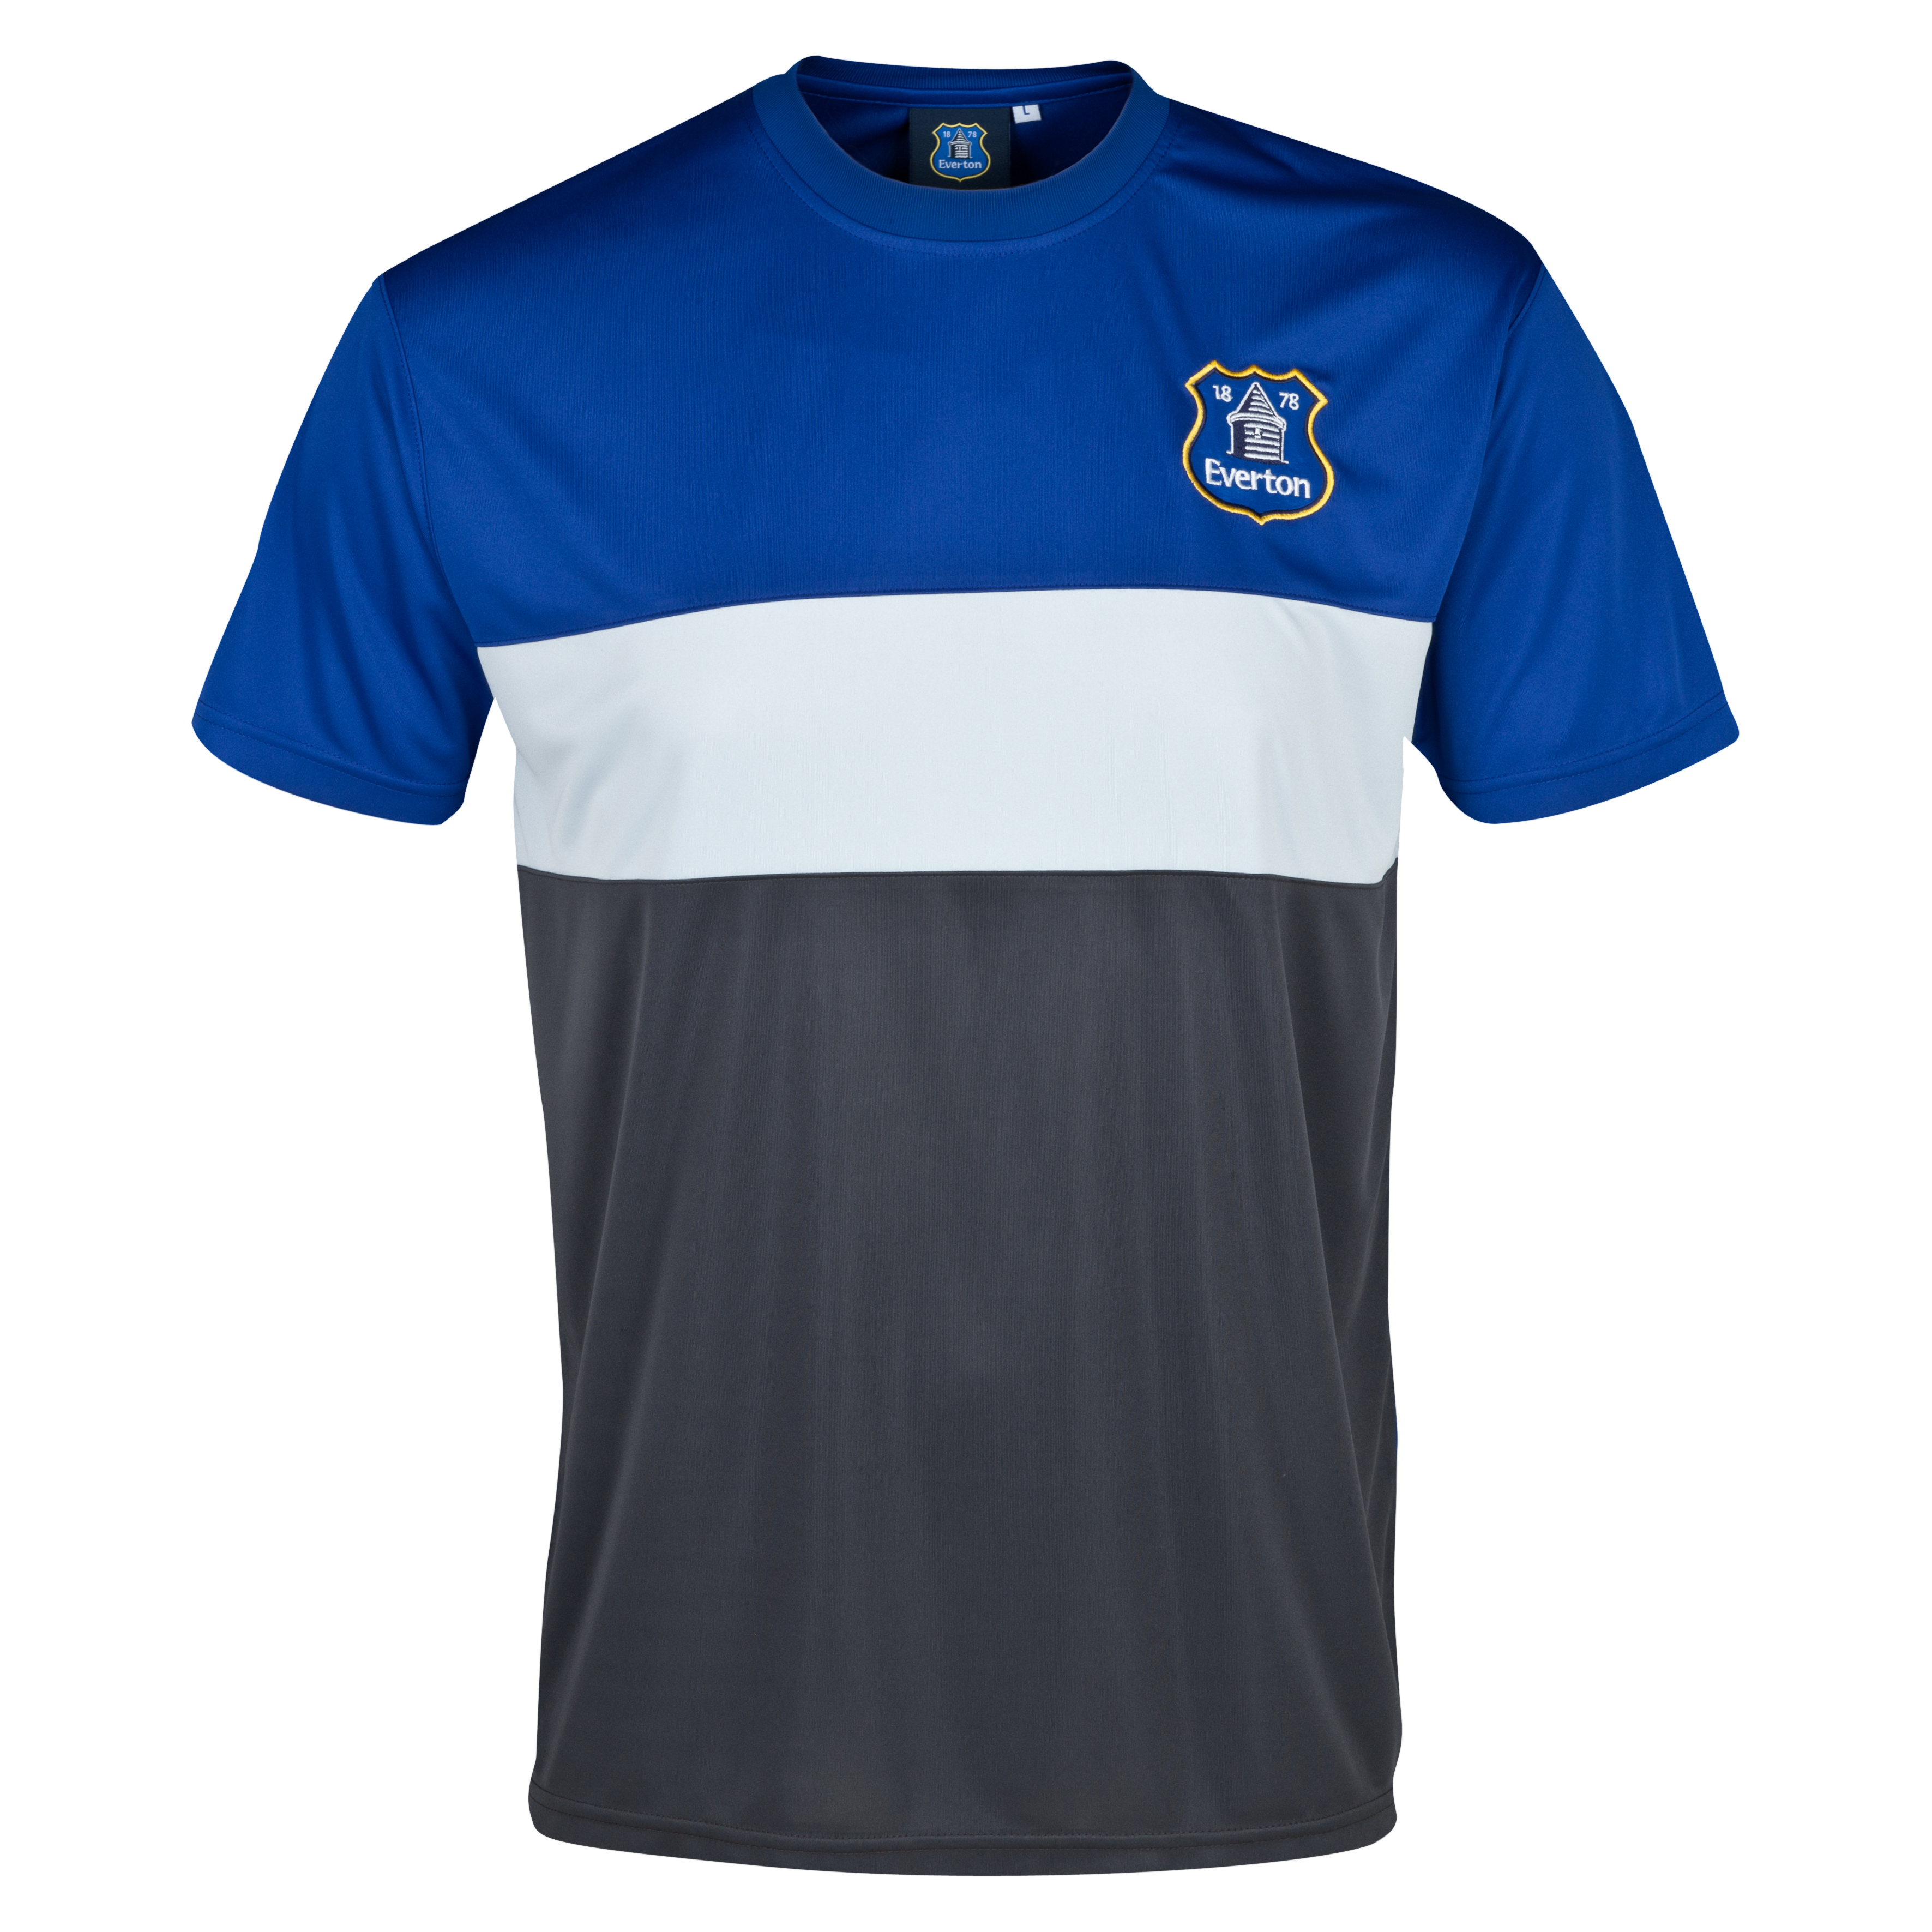 Everton Essentials Blocks T-Shirt - Mens Royal Blue